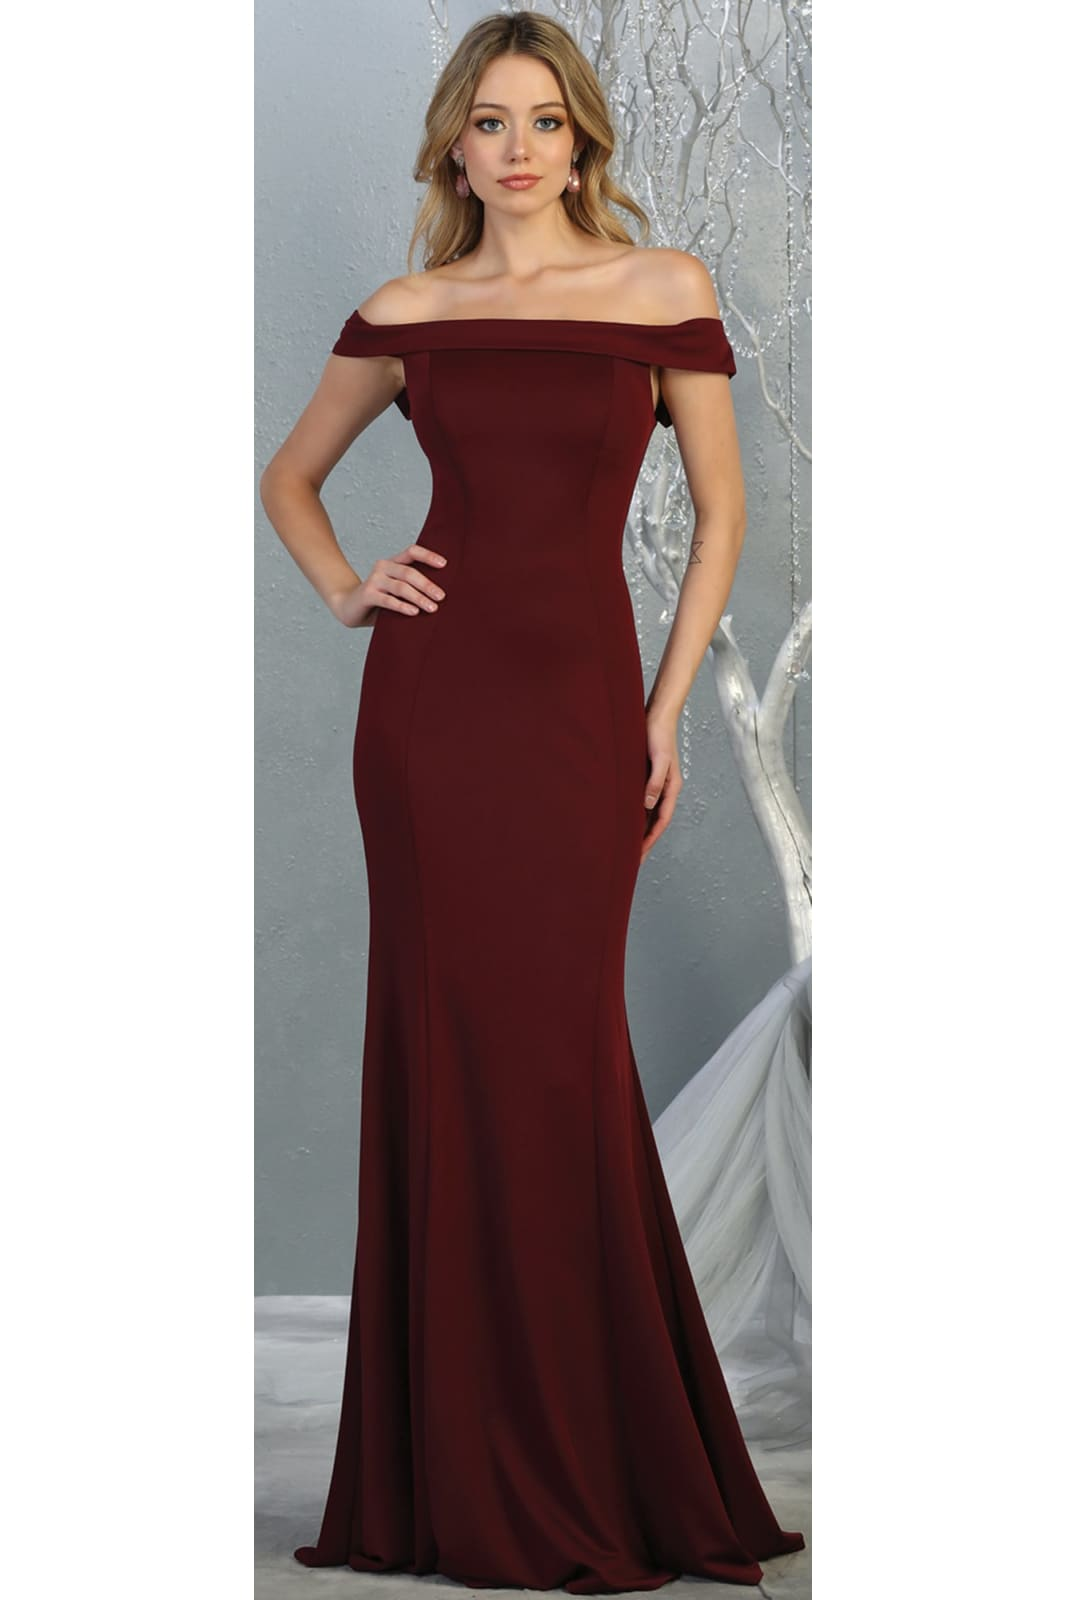 Simple Off Shoulder Evening Gown - LA1739 - BURGUNDY / 4